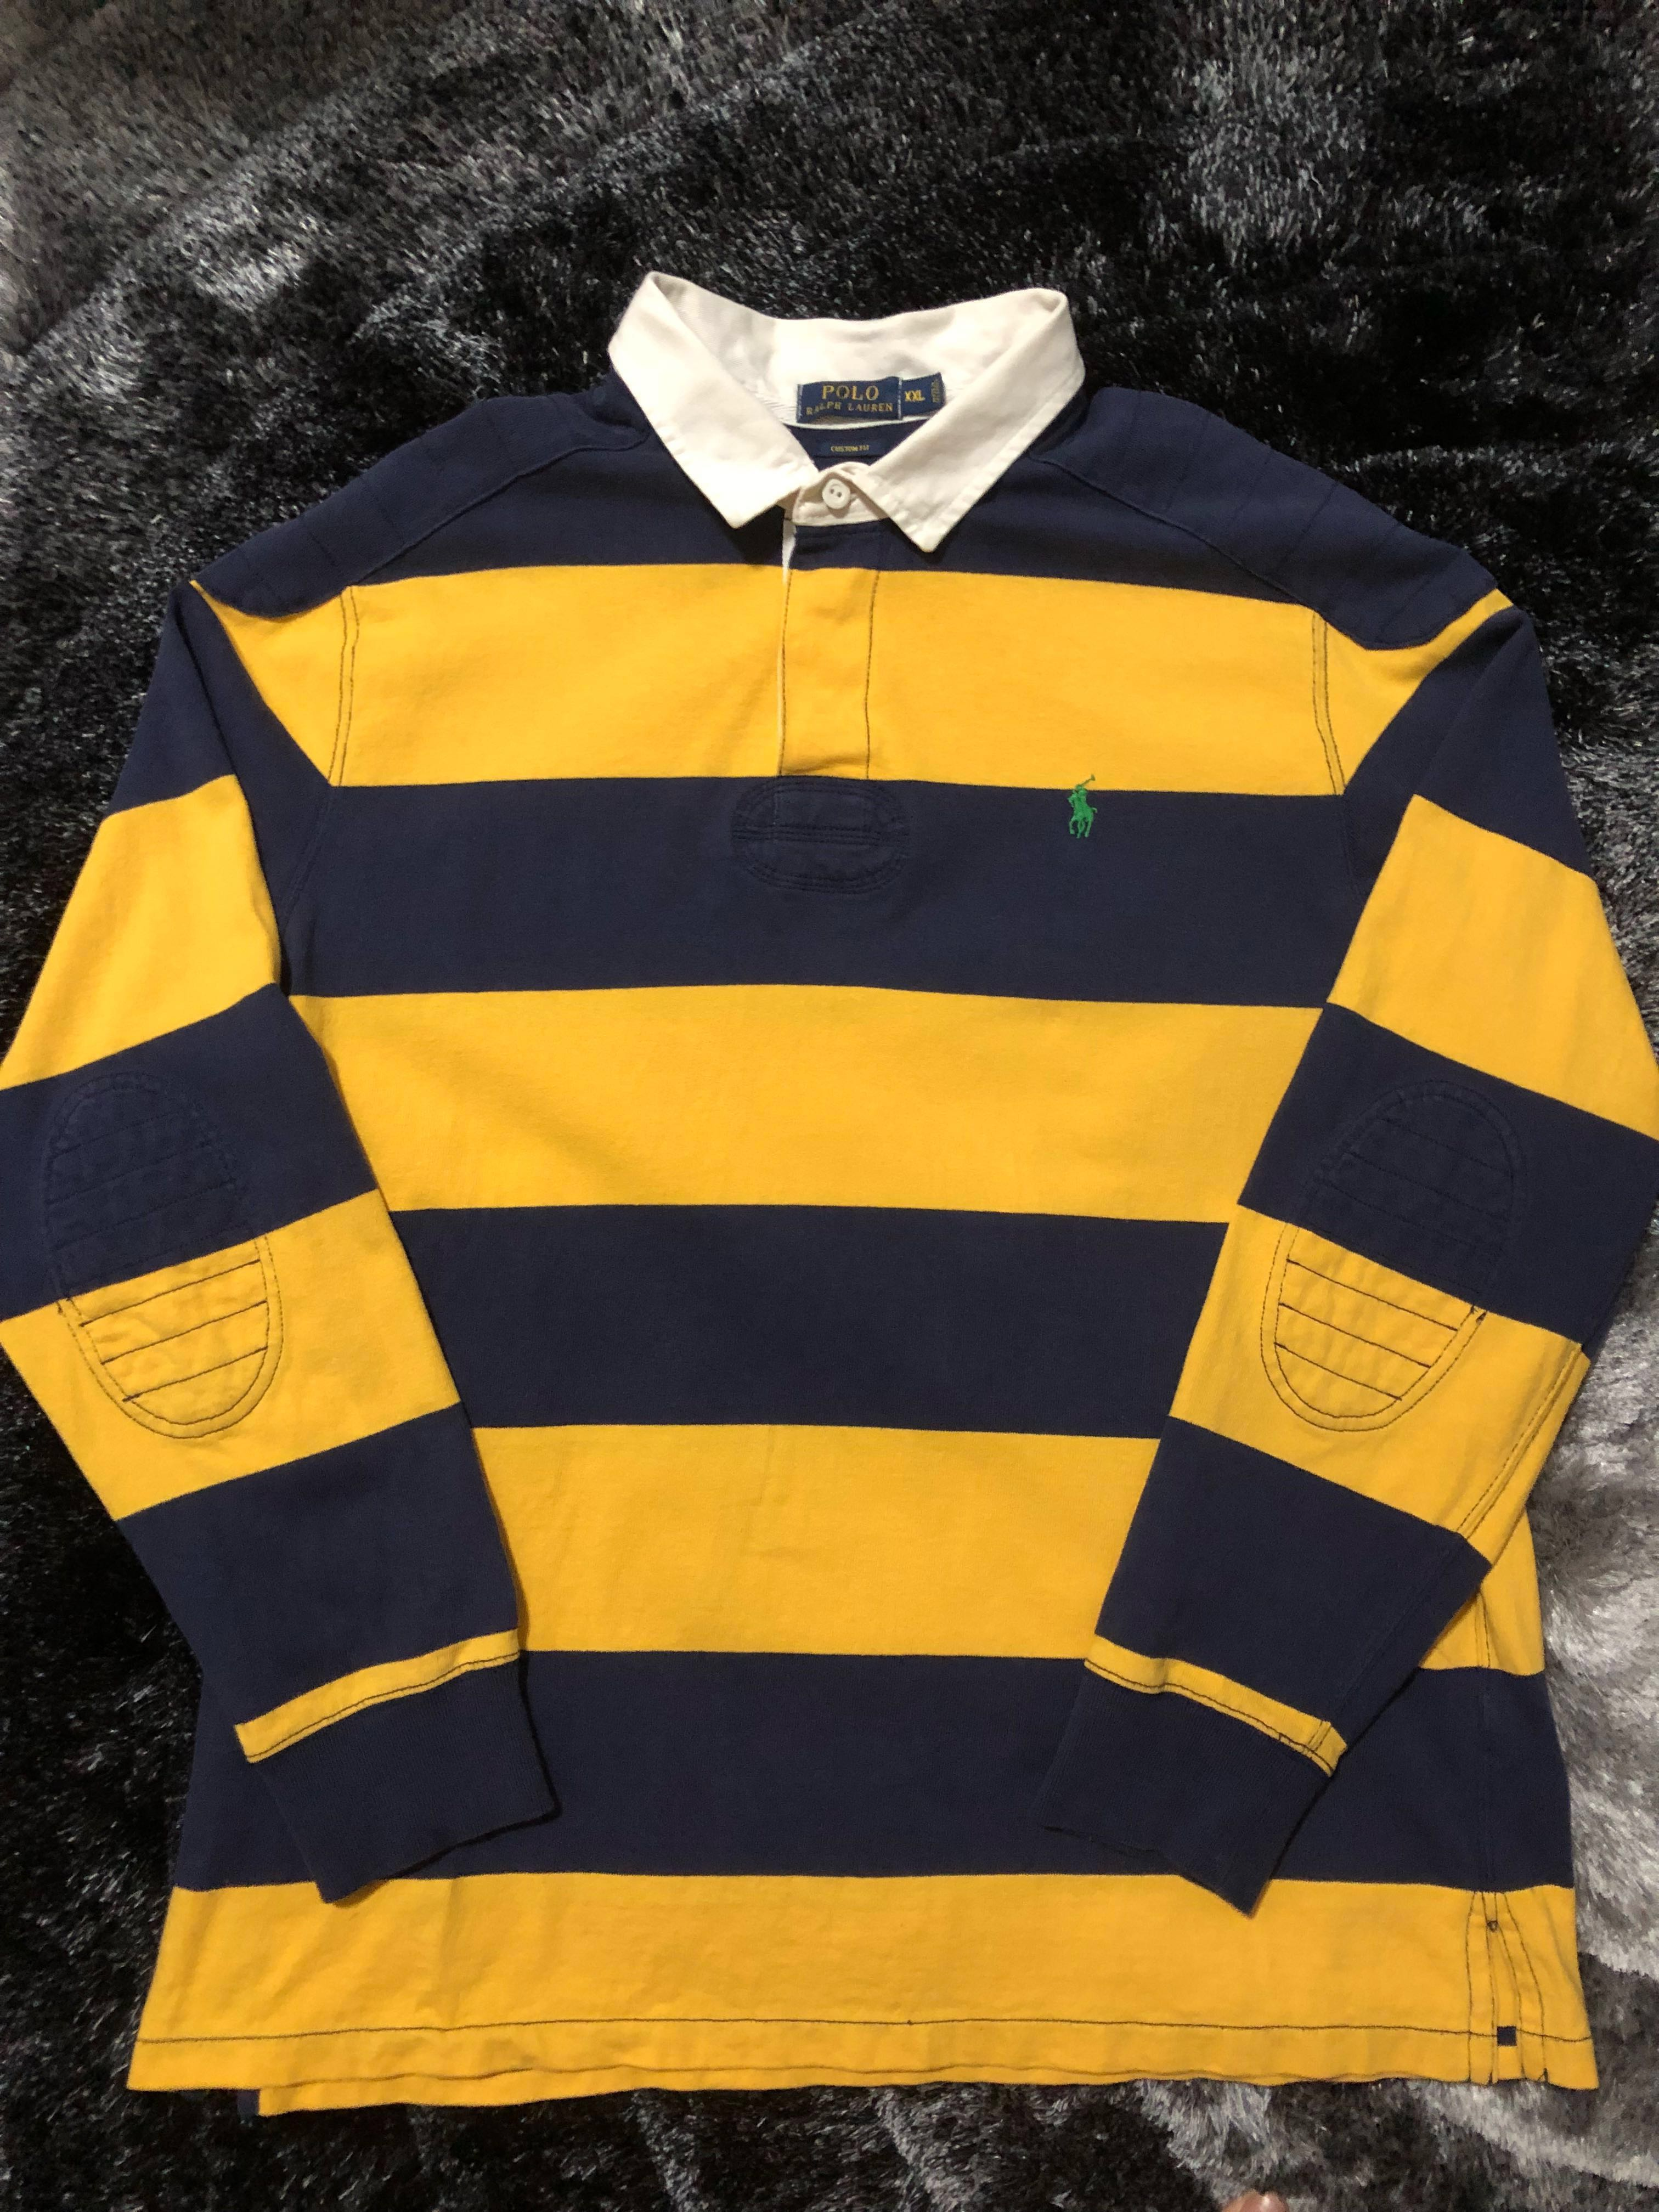 f5f5d68e Vintage Polo Ralph Lauren Rugby Shirt, Men's Fashion, Clothes, Tops on  Carousell